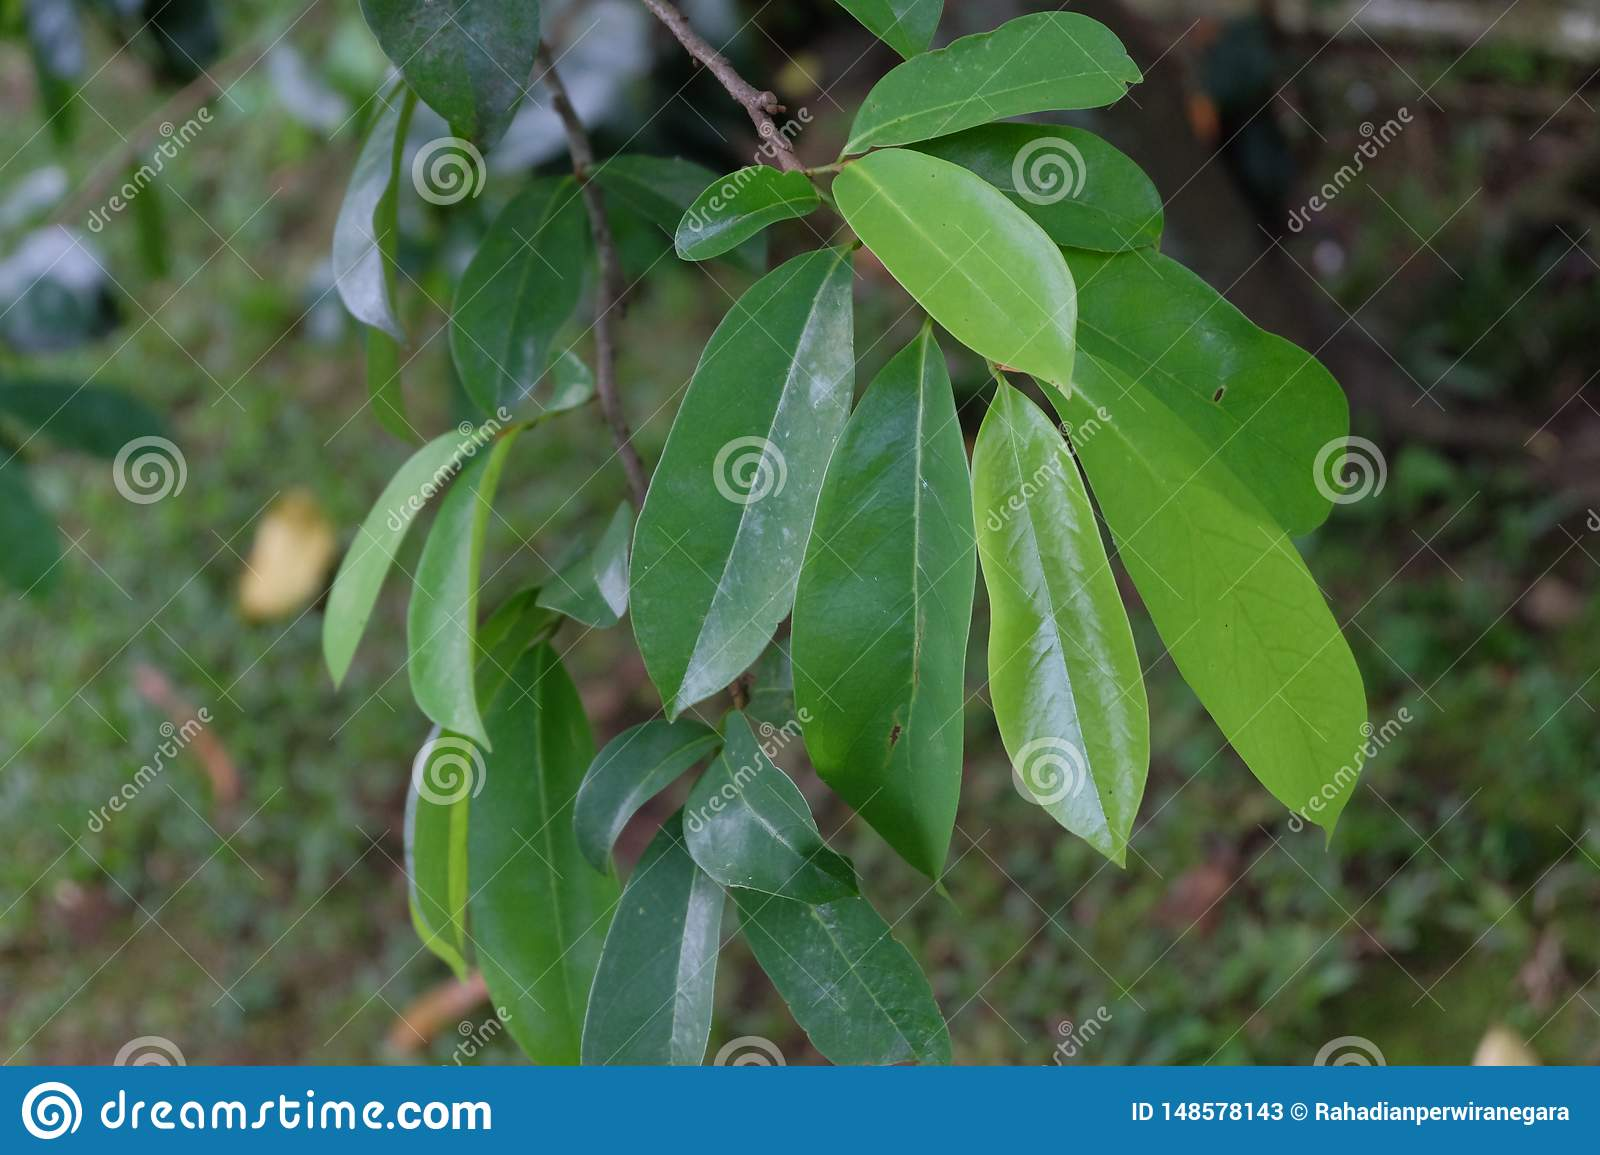 Soursop. evergreen tree with wide green leaves, a species of the genus Annona of the family Annonovye, the closest relative of